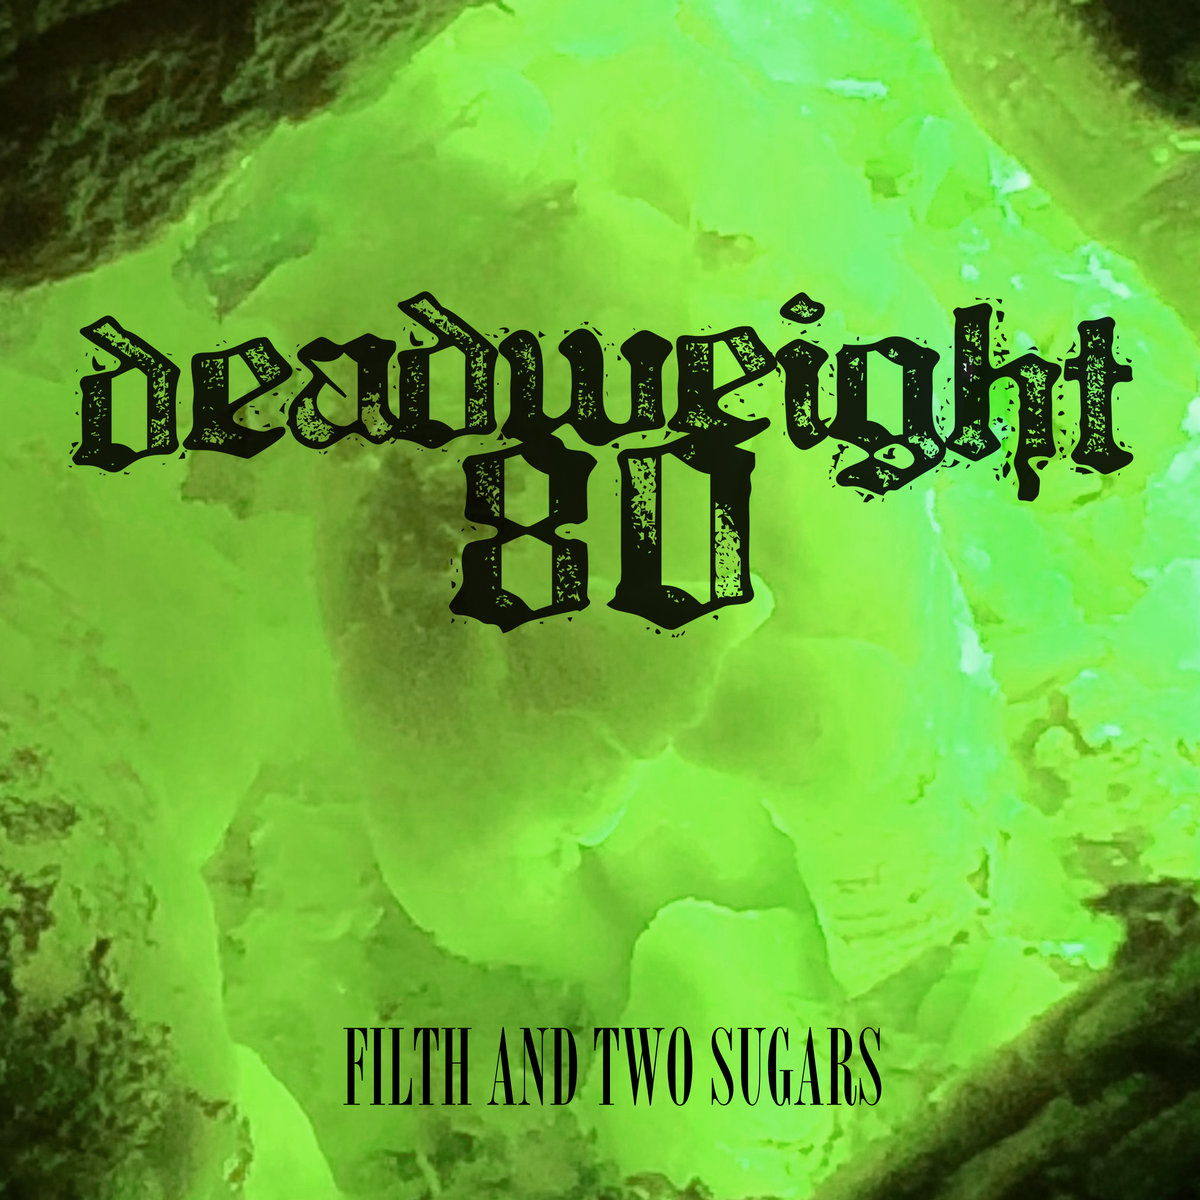 Deadweight 80 - Filth and Two Sugars [EP] (2018)